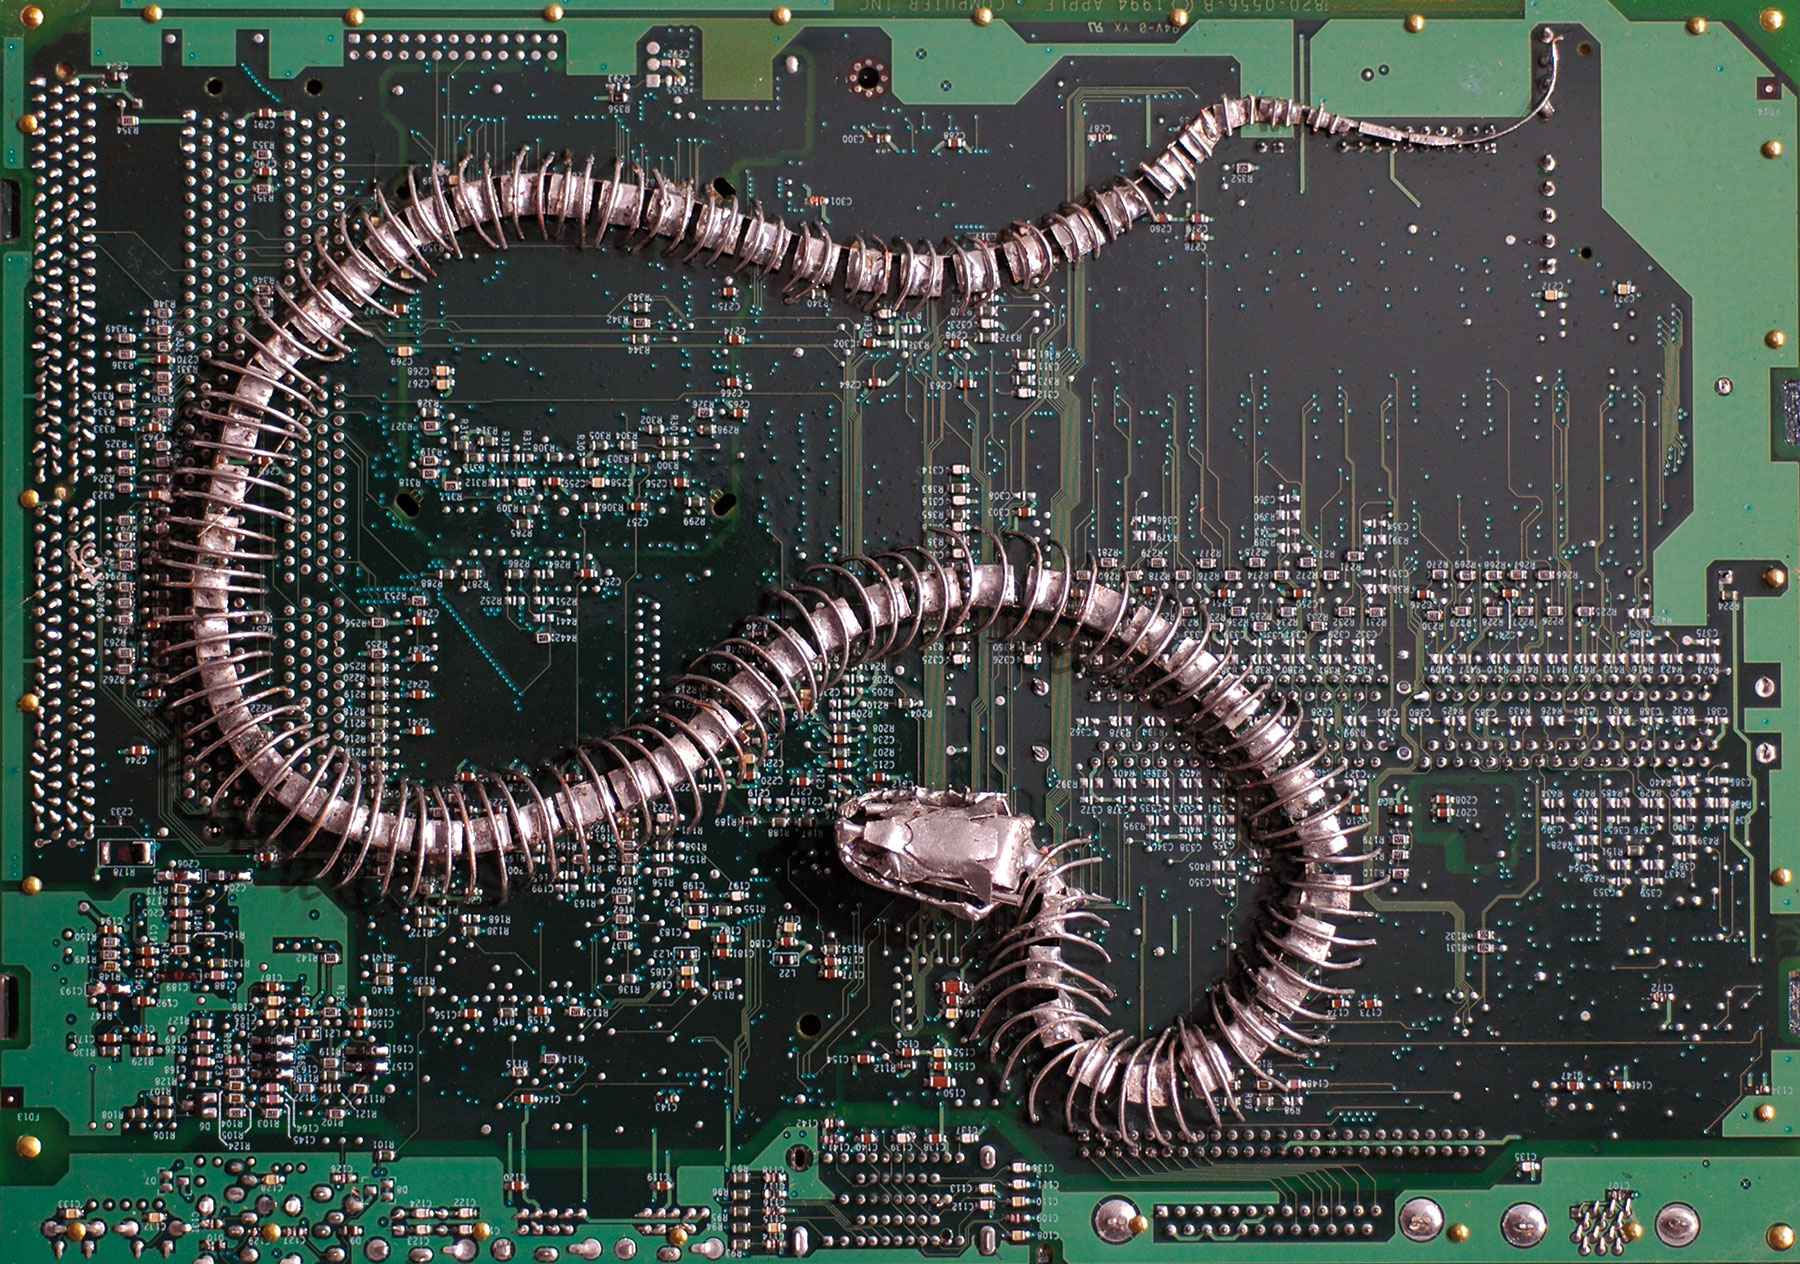 faux snake skeleton sinuously curved mounted on a circuit board background